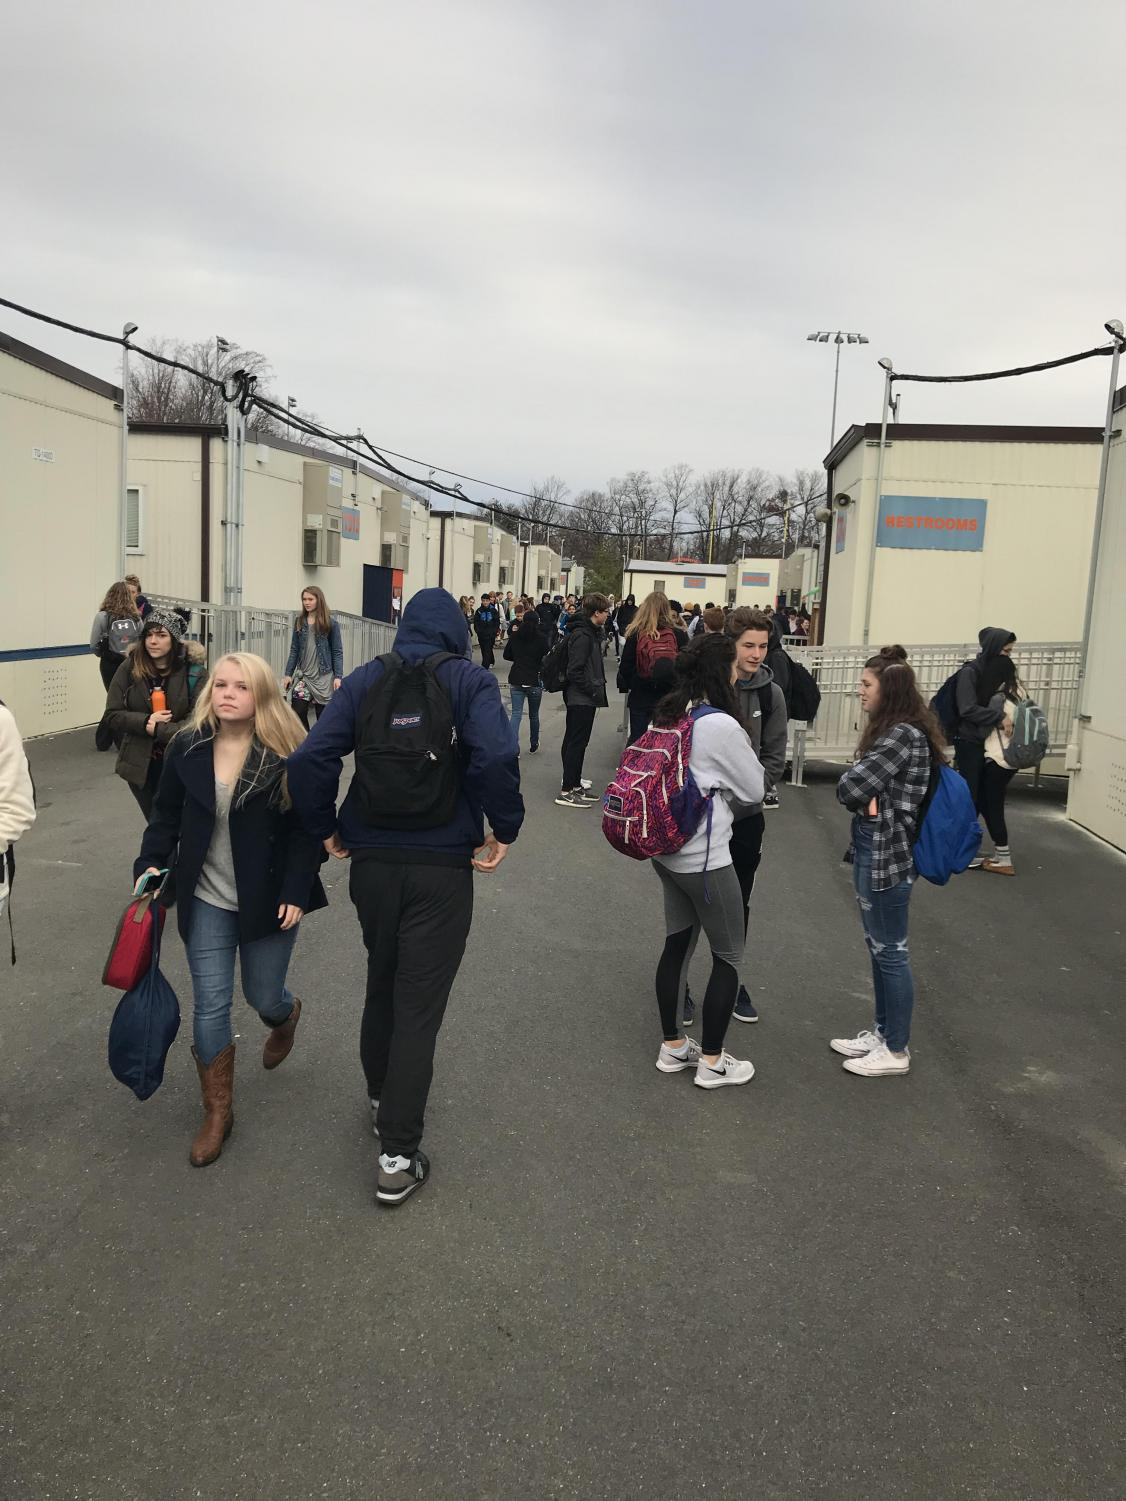 WS students walking in the cold weather anticipating snow in the future.